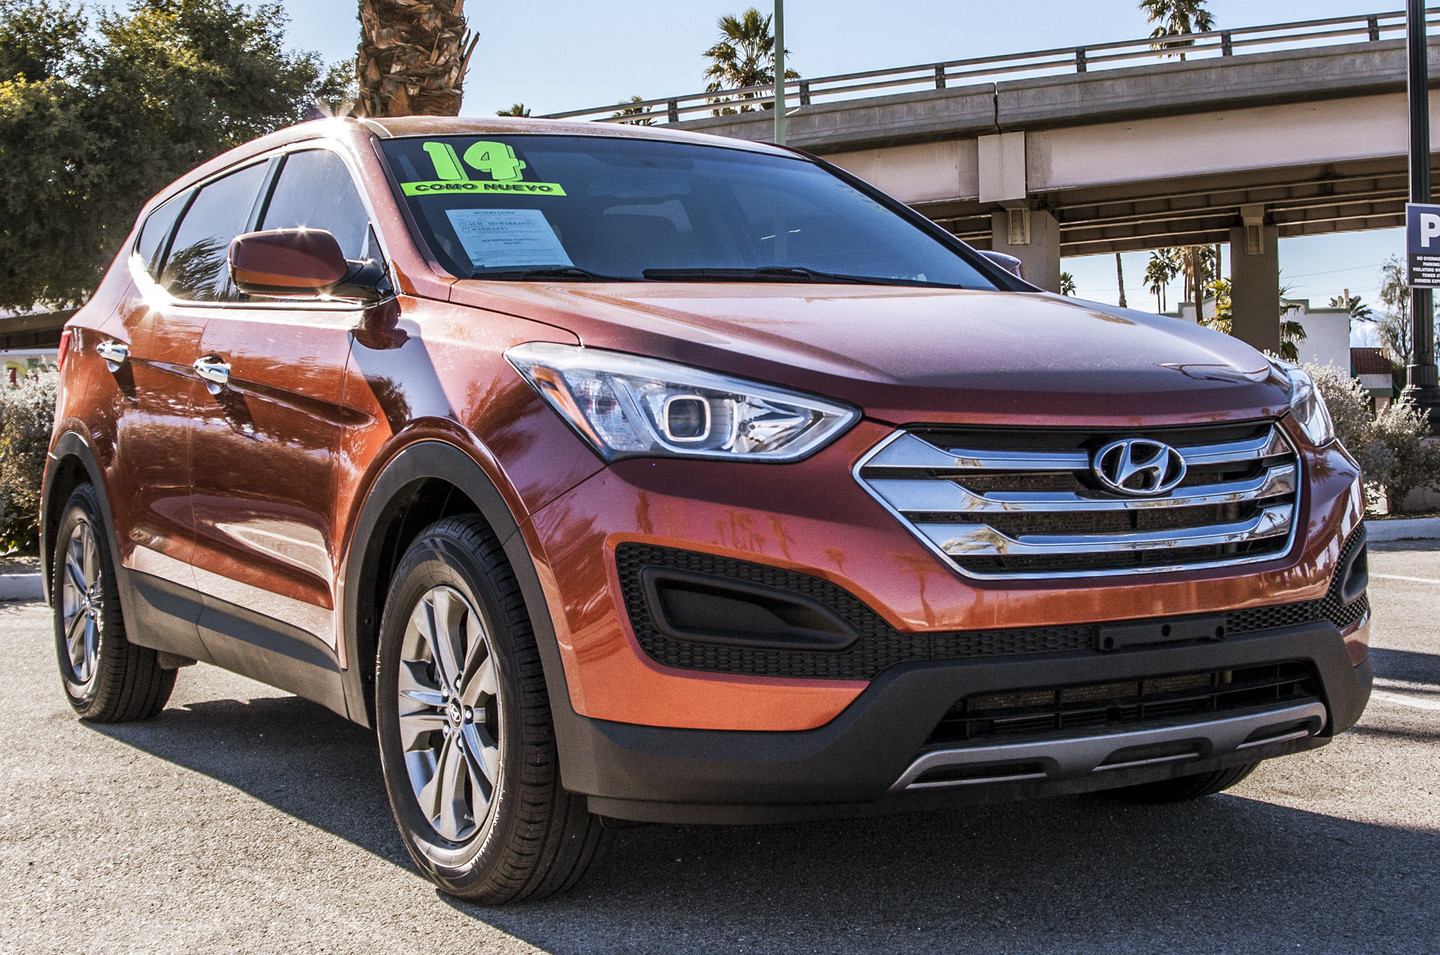 hyundai santa fe sport - photo #11